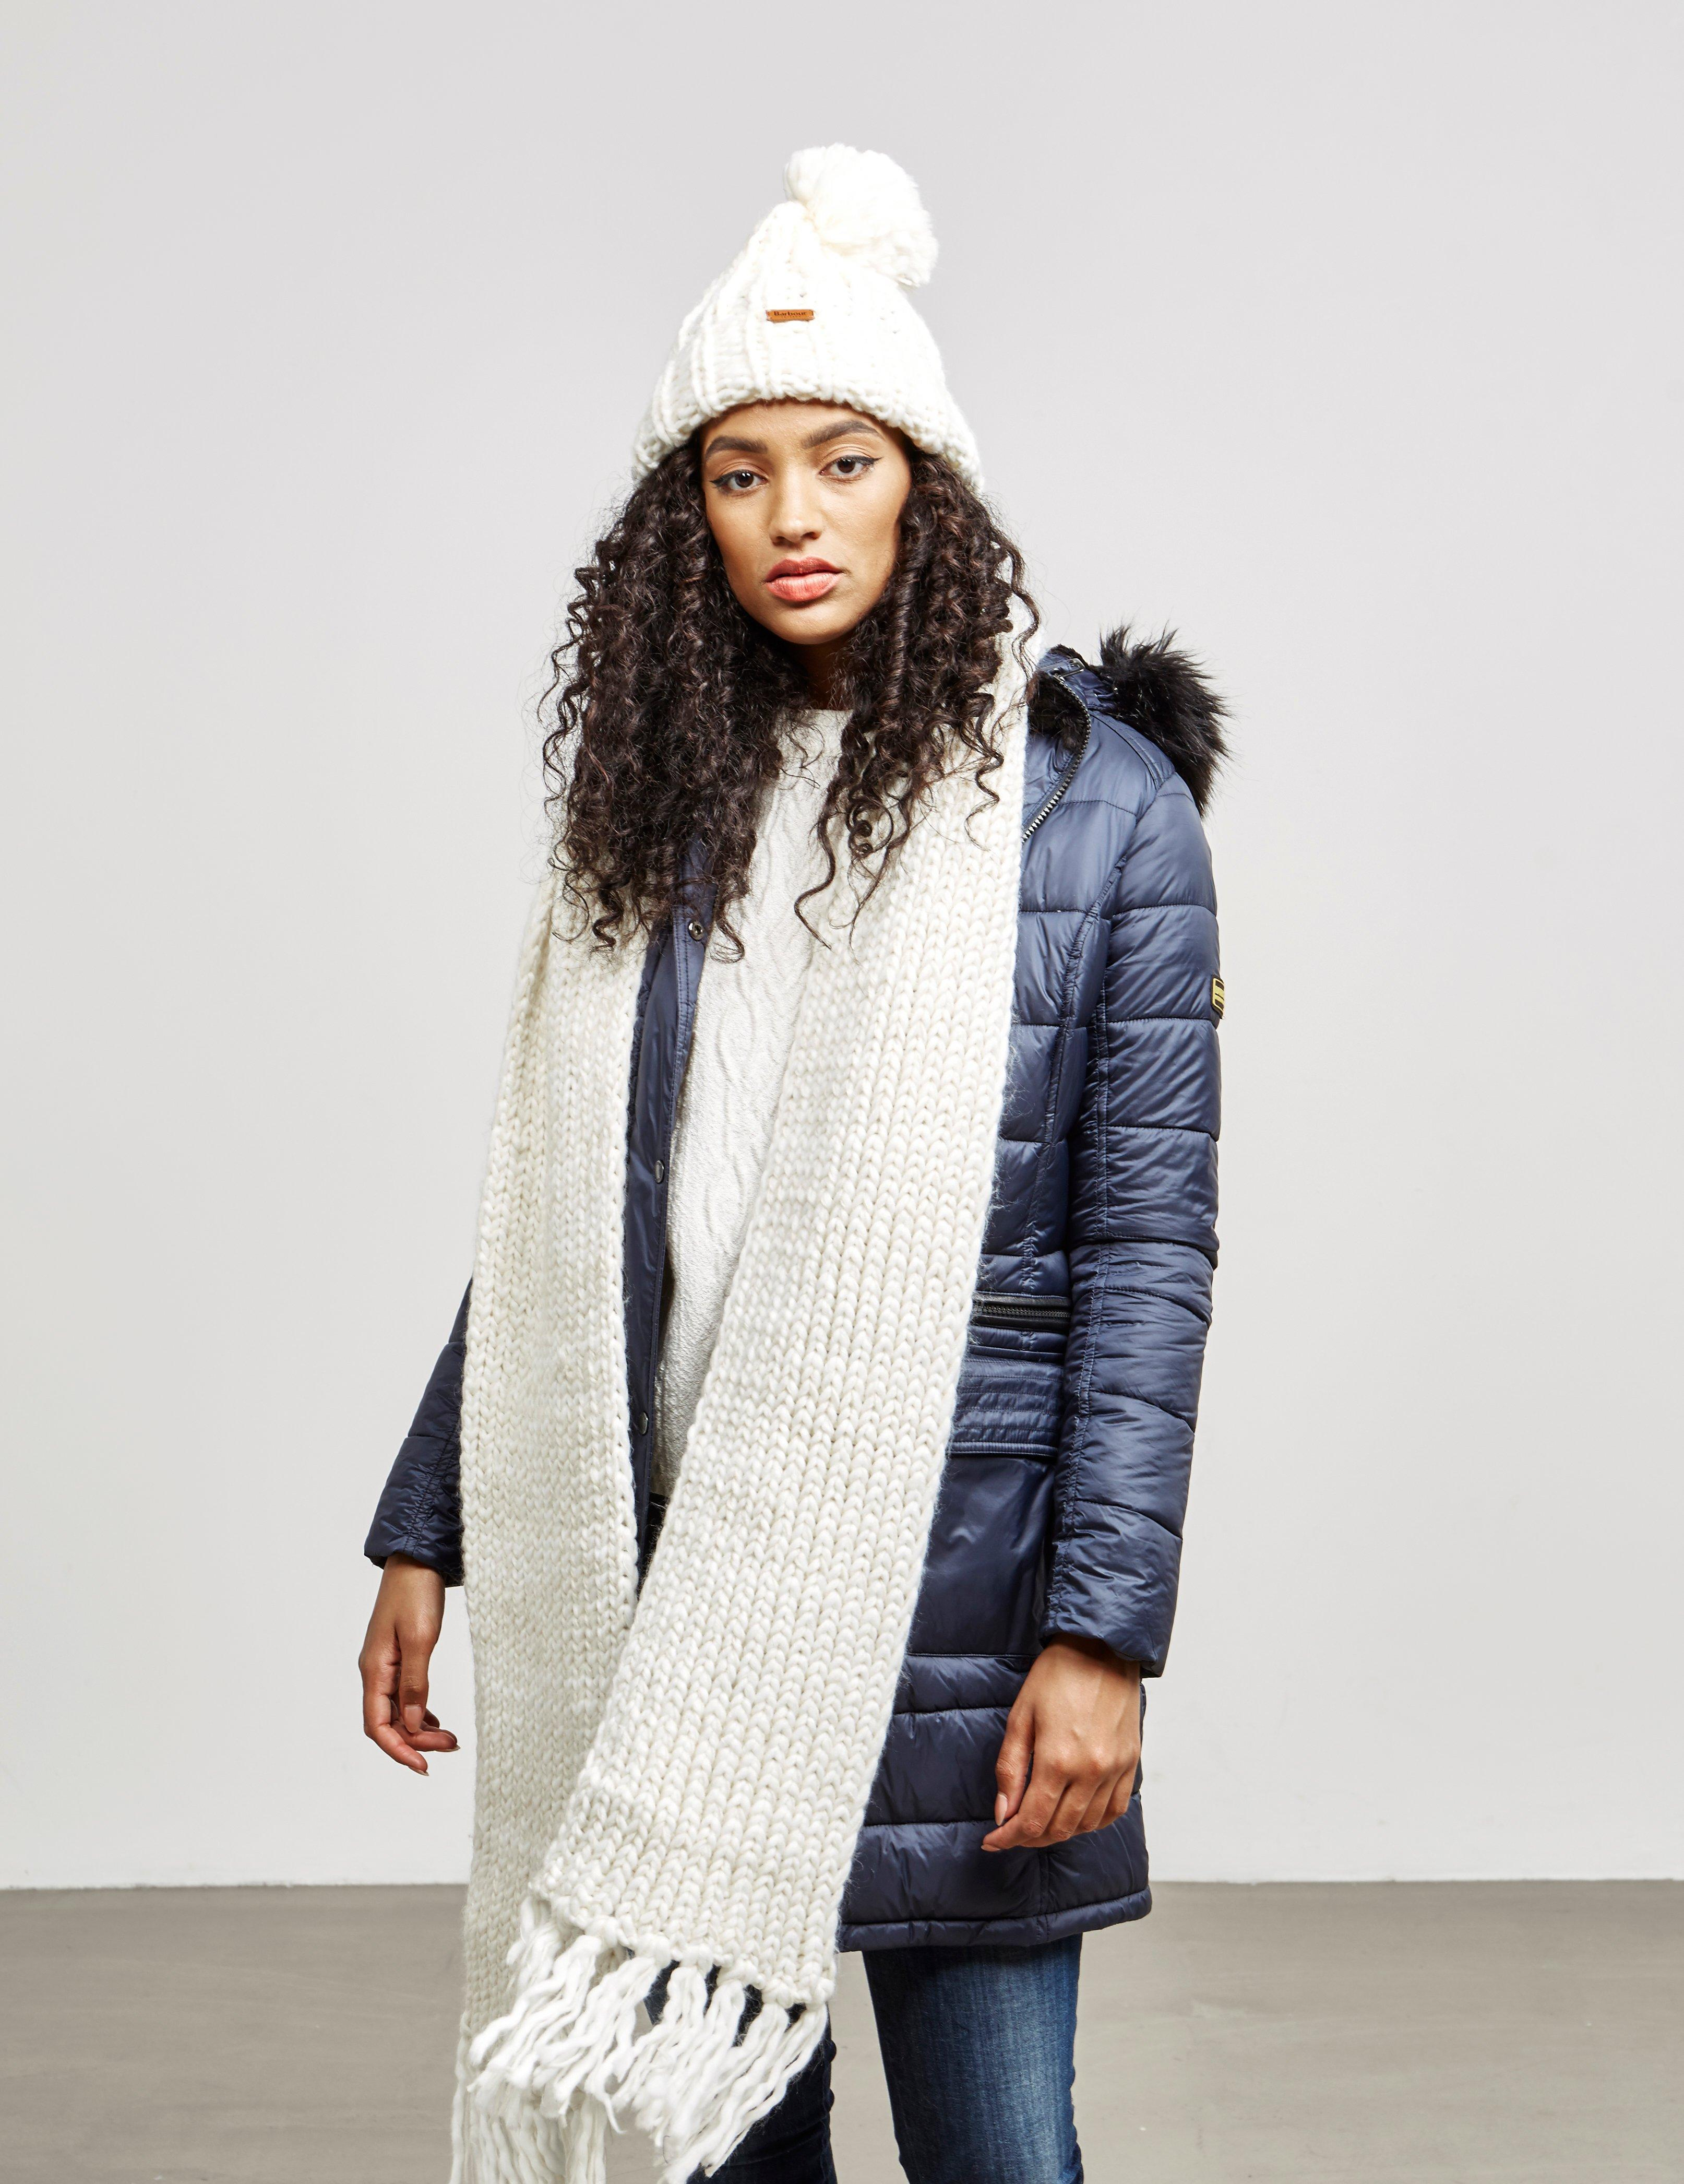 Lyst - Barbour Womens Chunky Hat And Scarf Set White in White 85d5e0aaa67